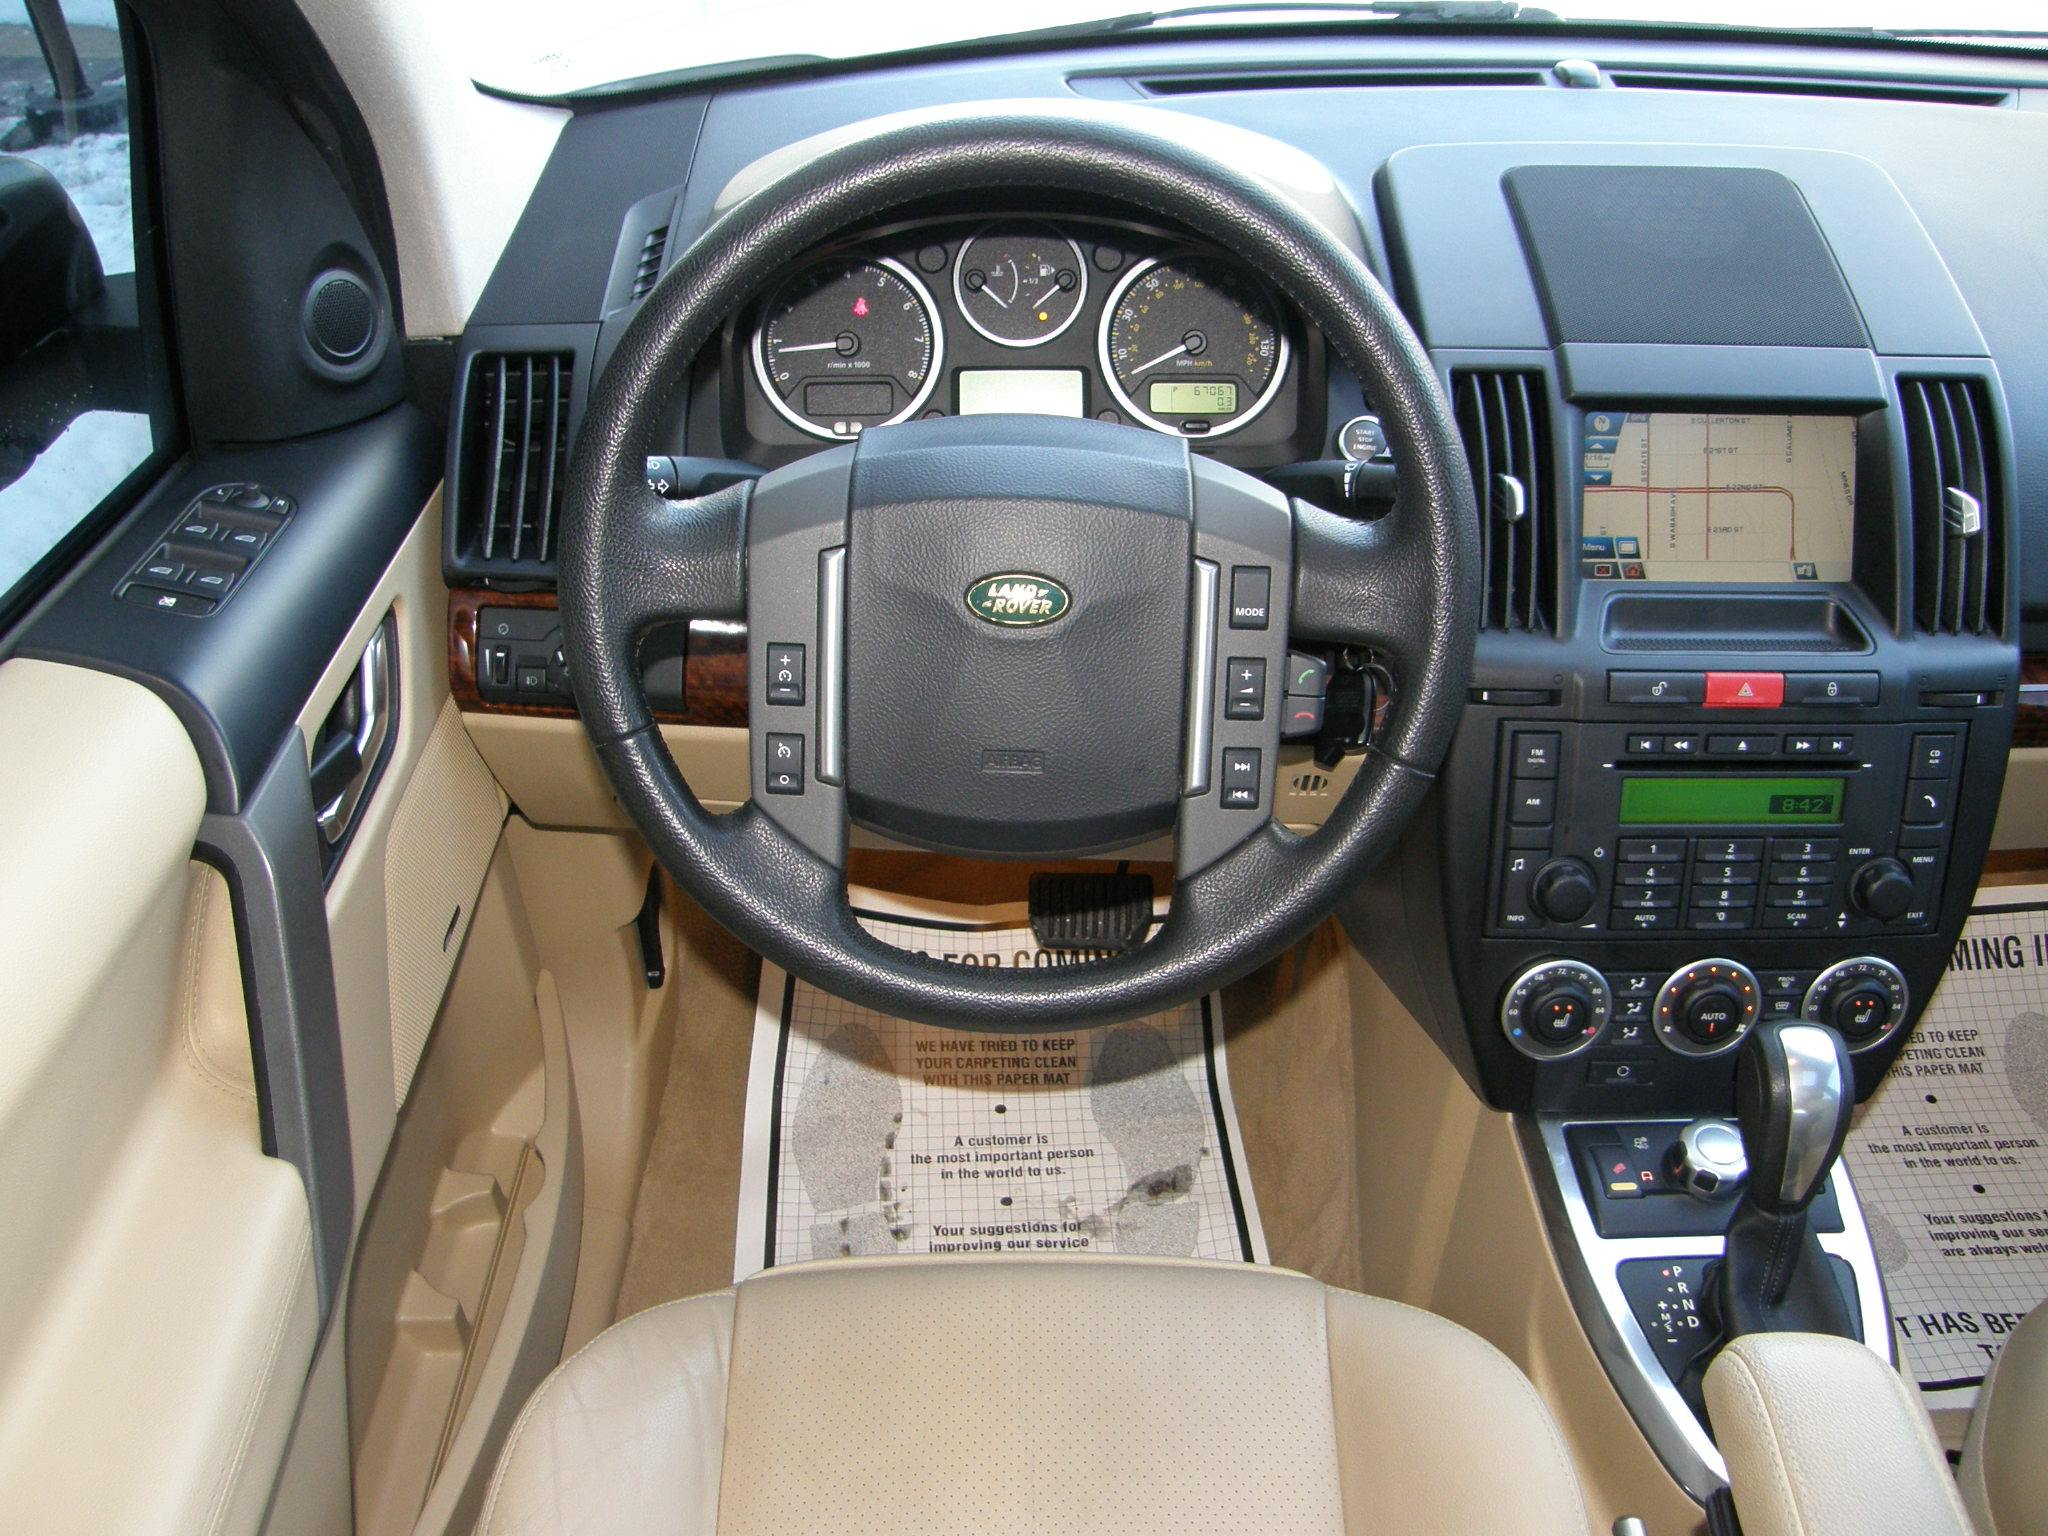 Stereo Package For A 2010 Land Rover Lr2 Go4carz Com